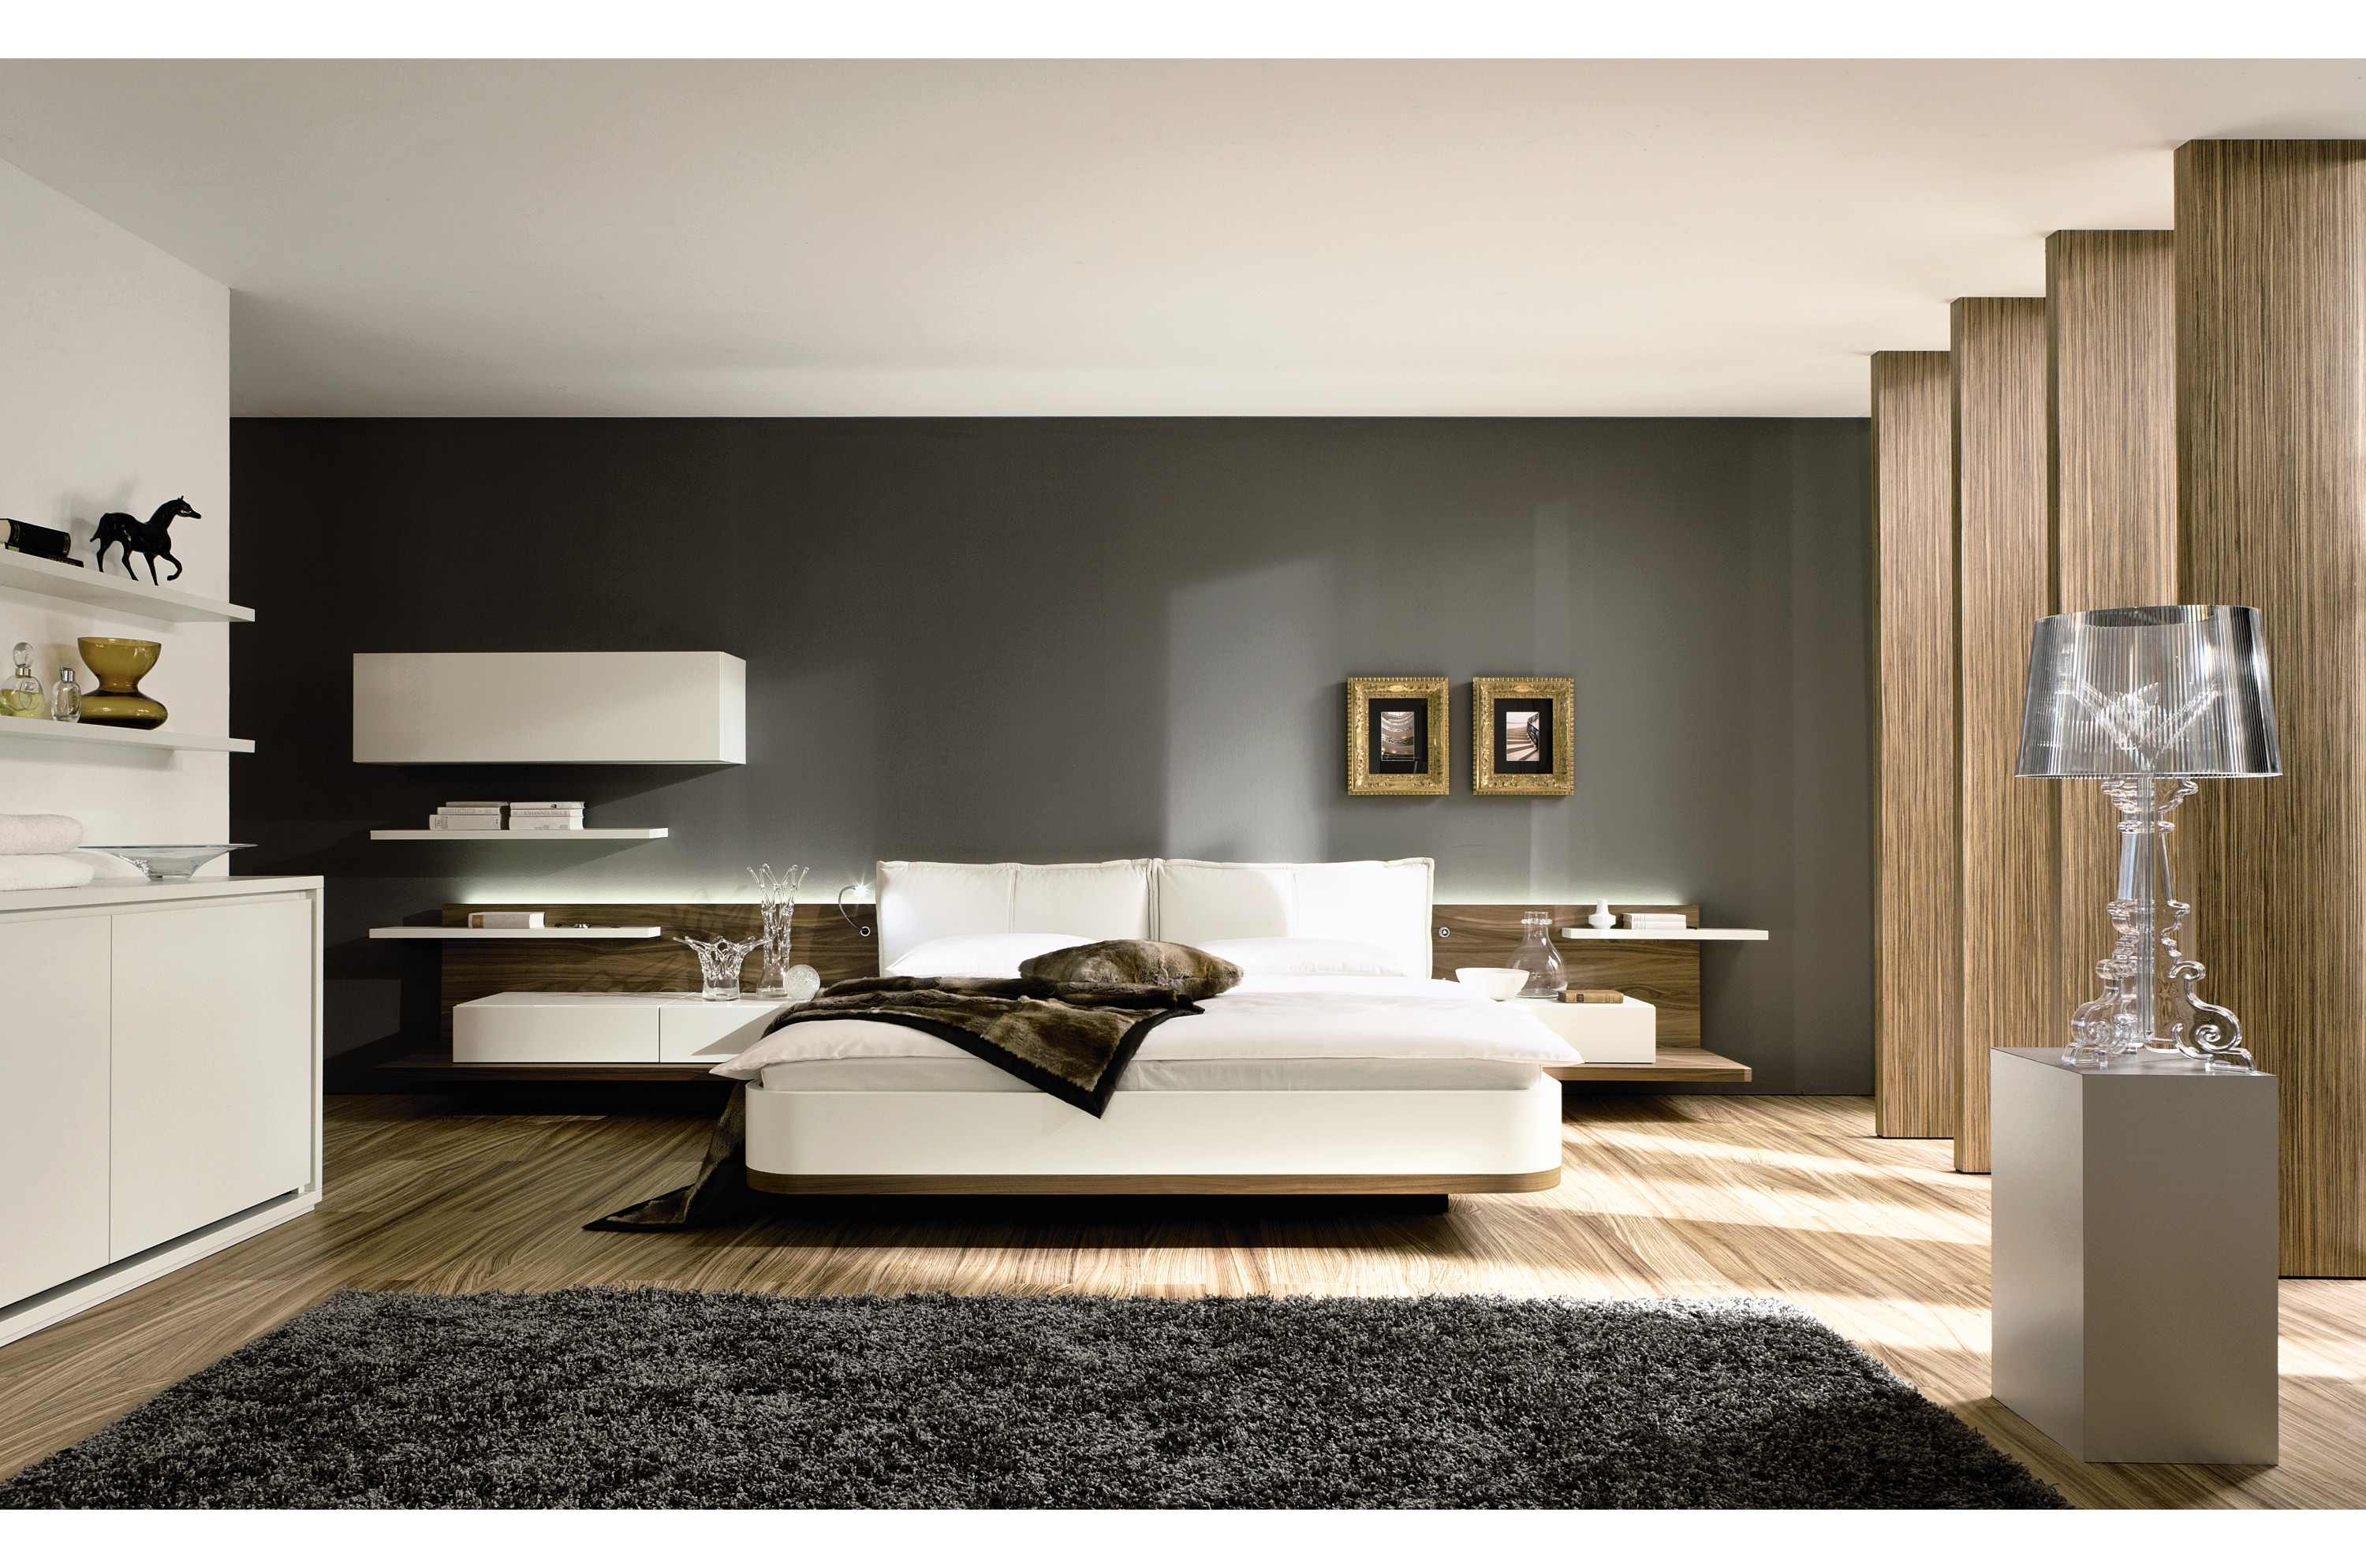 Modern bedroom innovation bedroom ideas interior design for Modern interior bedroom designs